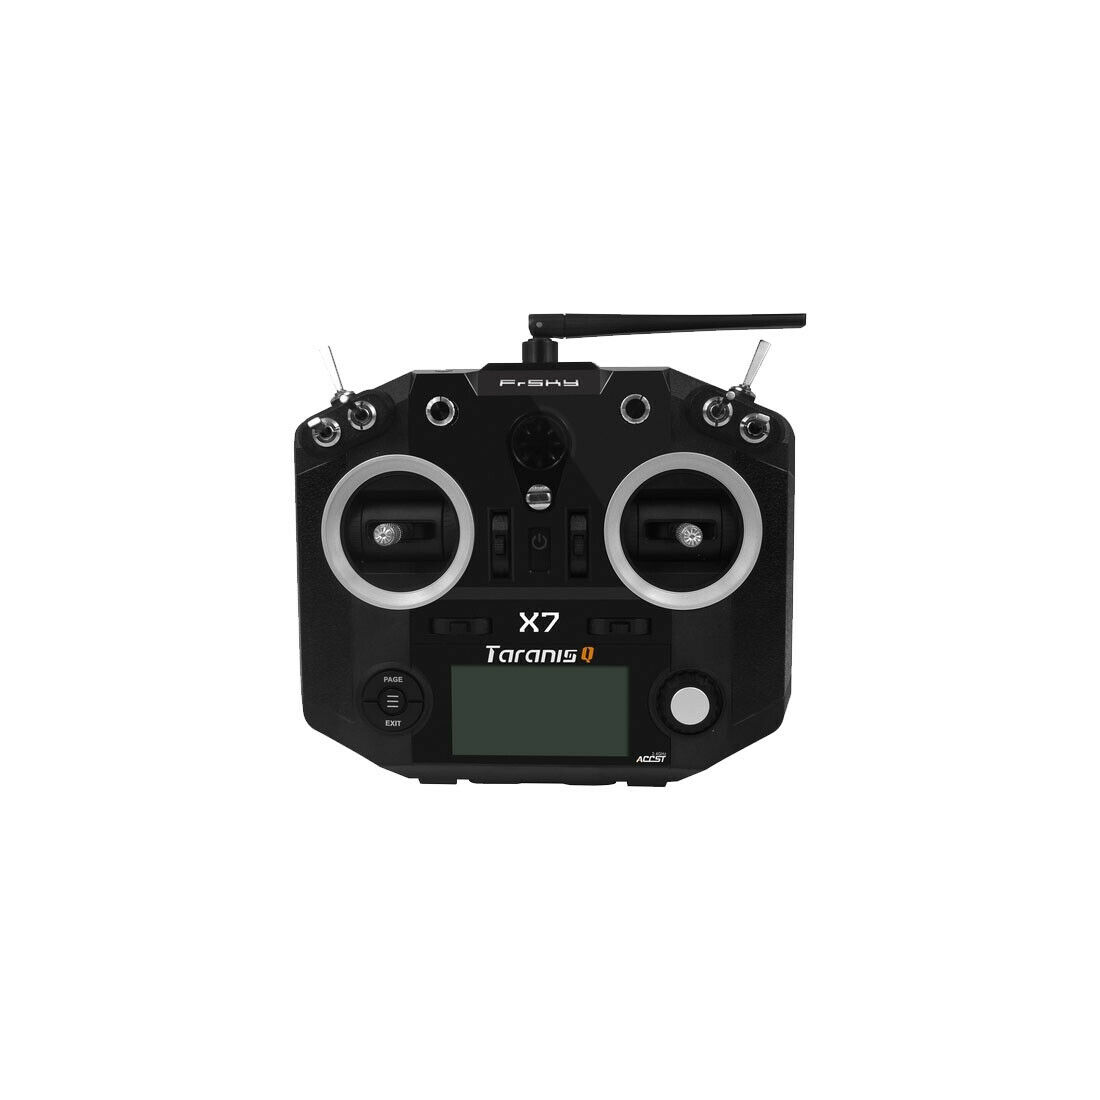 FrSky ACCST Taranis Q X7  2.4GHz 16CH Transmitter Remote Control